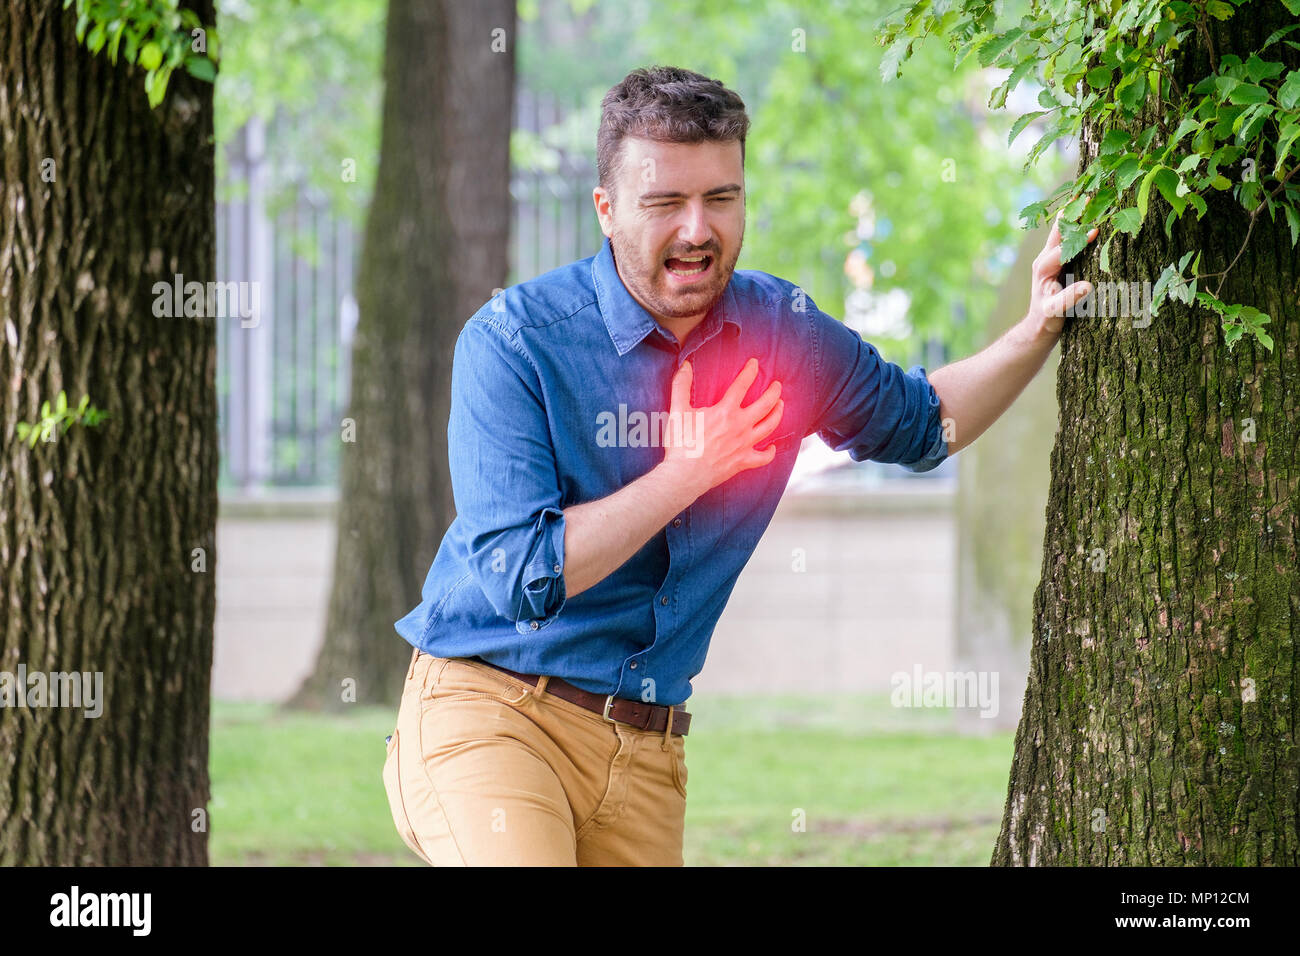 Severe heartache.Man pressing on chest with painful expression fist aid needed. - Stock Image